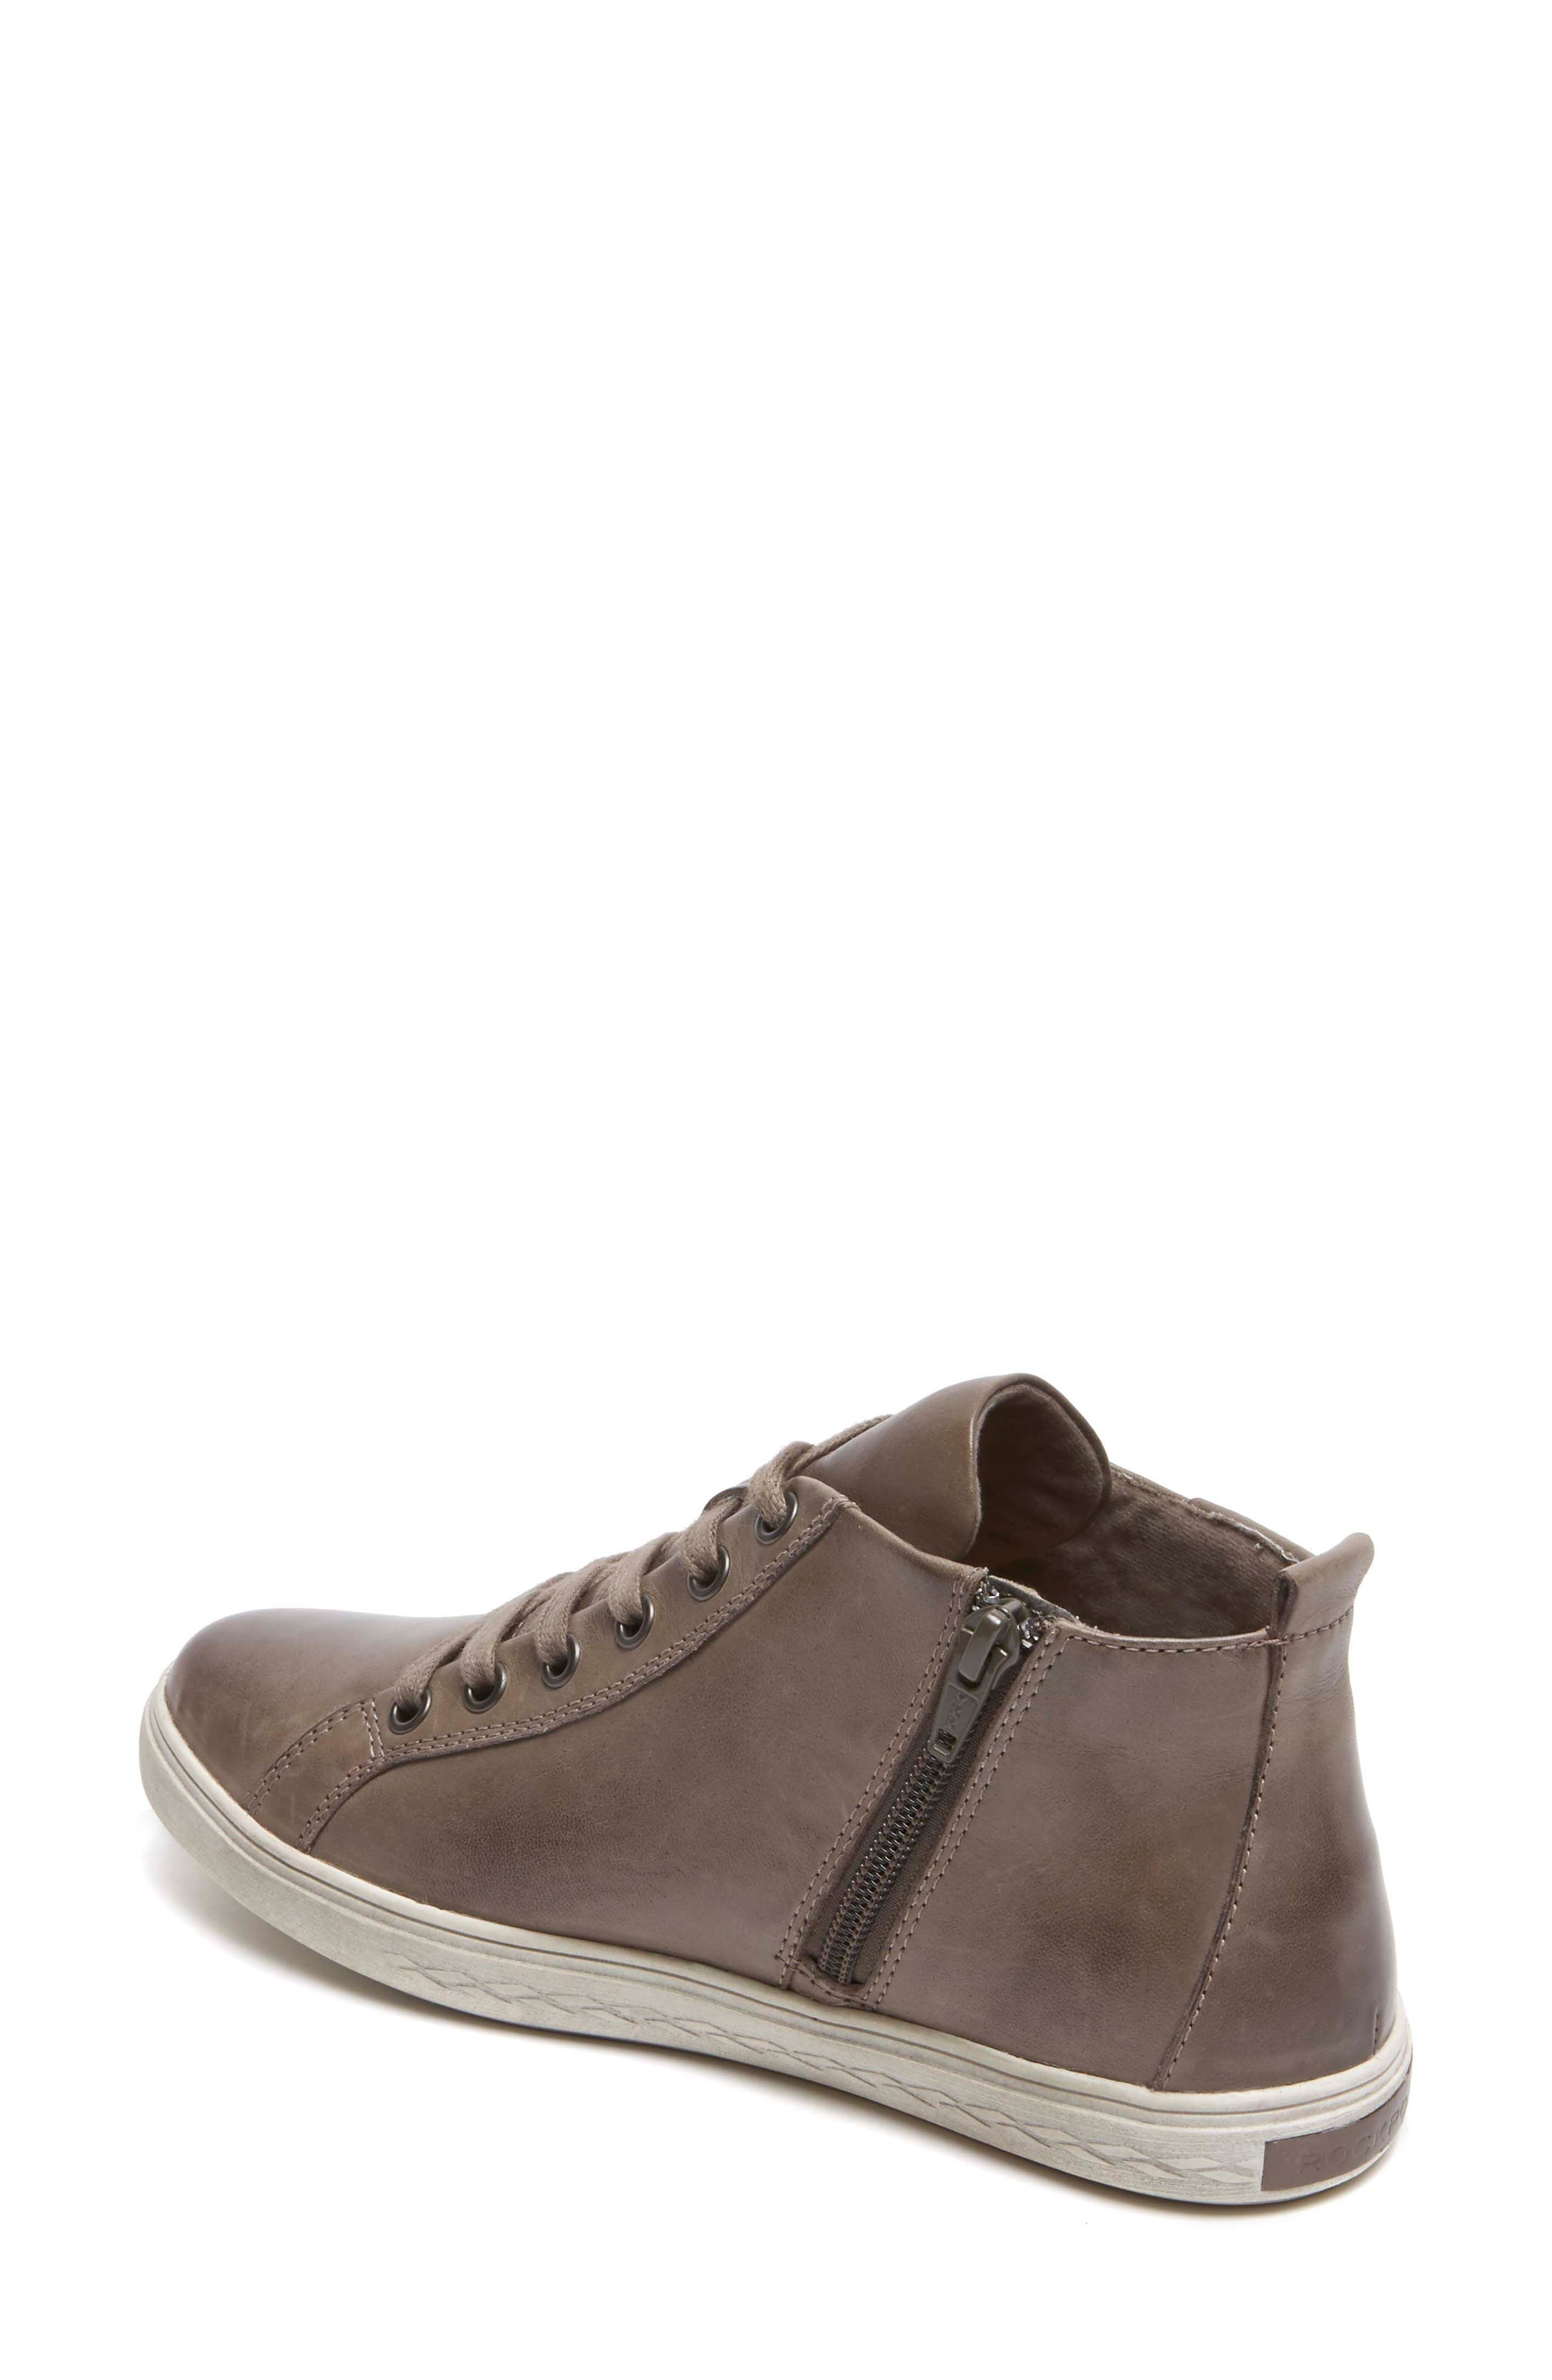 Willa High Top Sneaker,                             Alternate thumbnail 2, color,                             Grey Leather